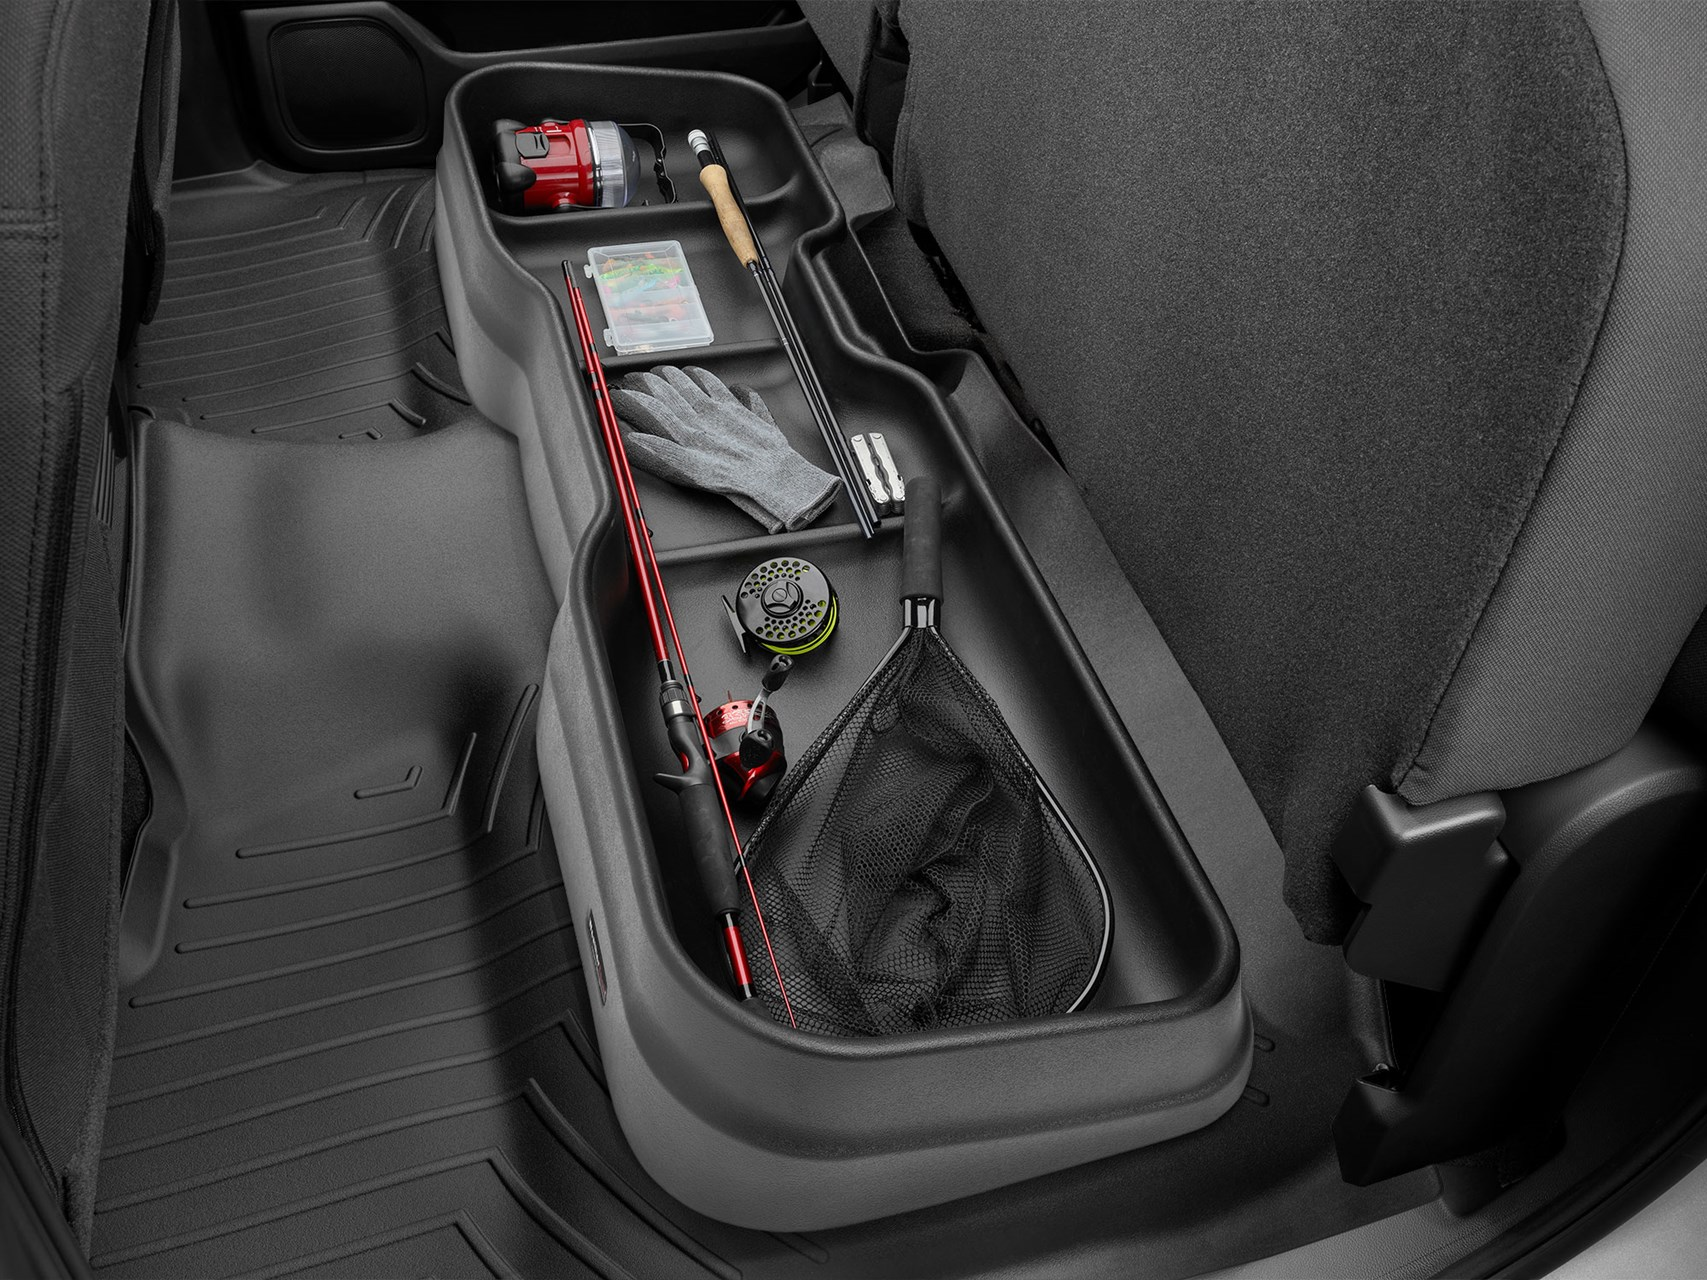 UnderSeat_Storage_with_fishing_tackle